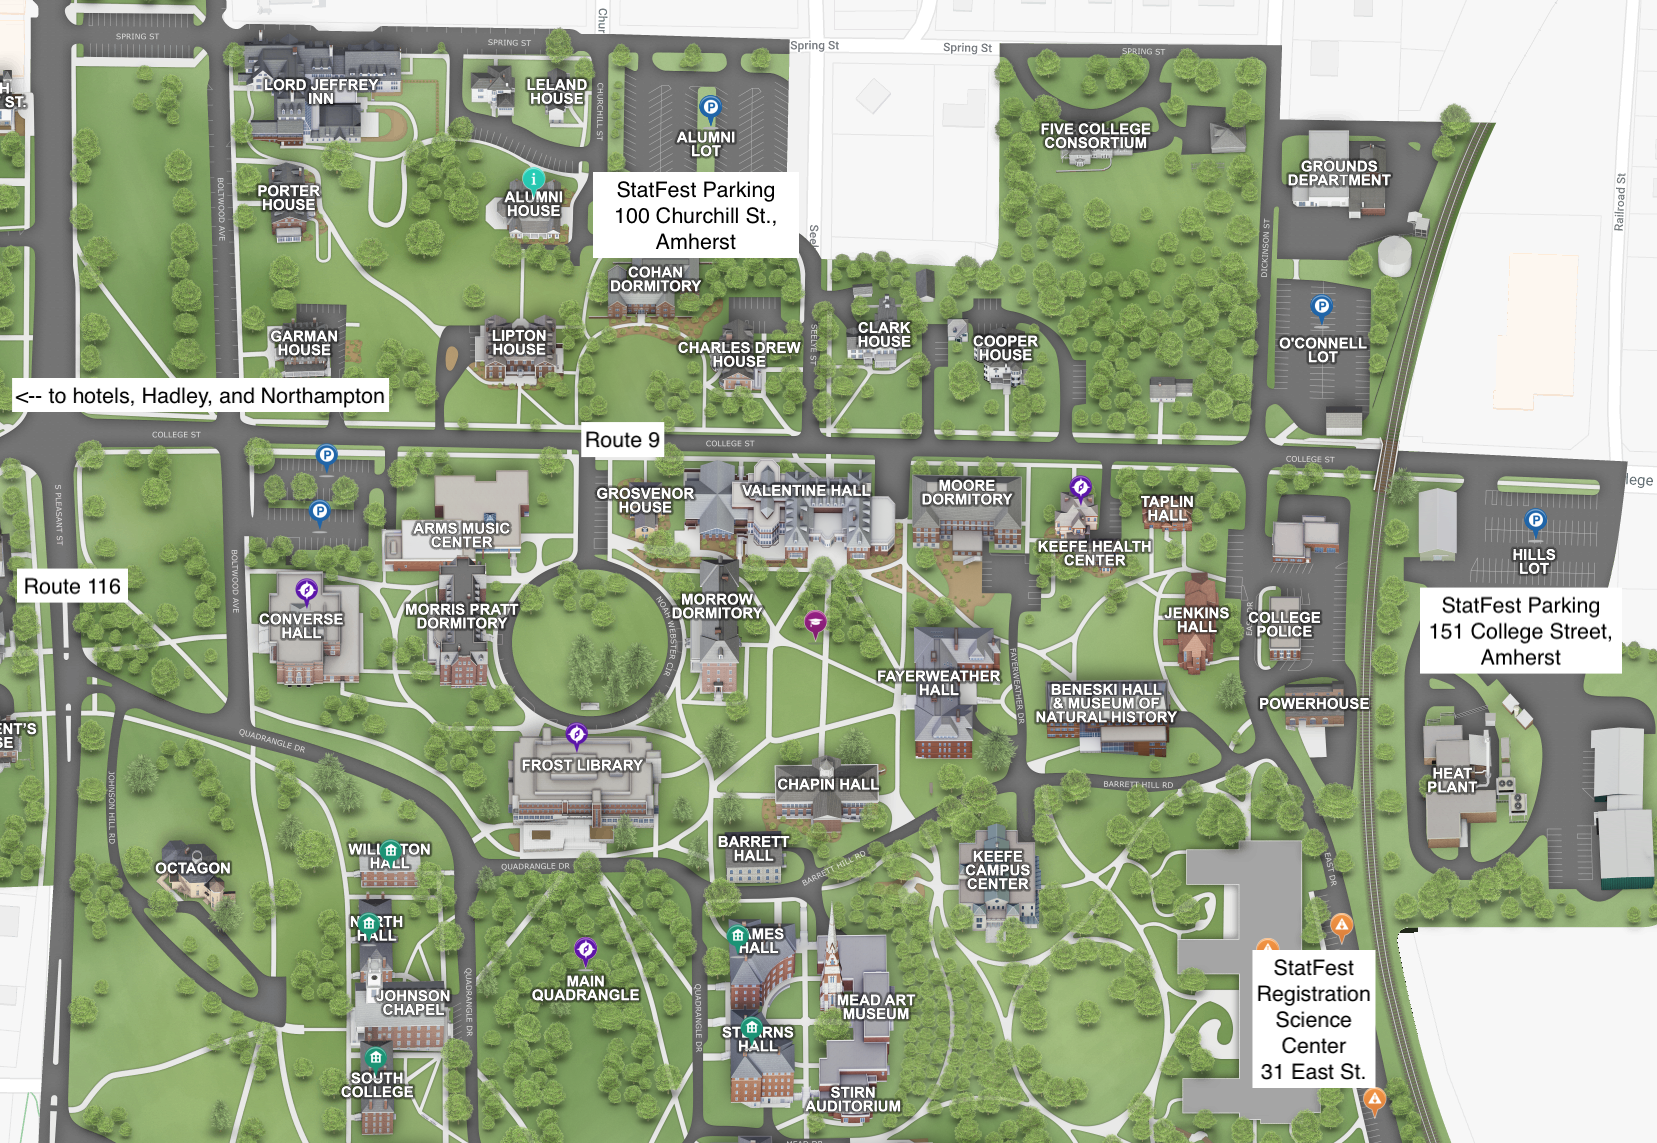 Amherst College Campus Map Travel and logistics information